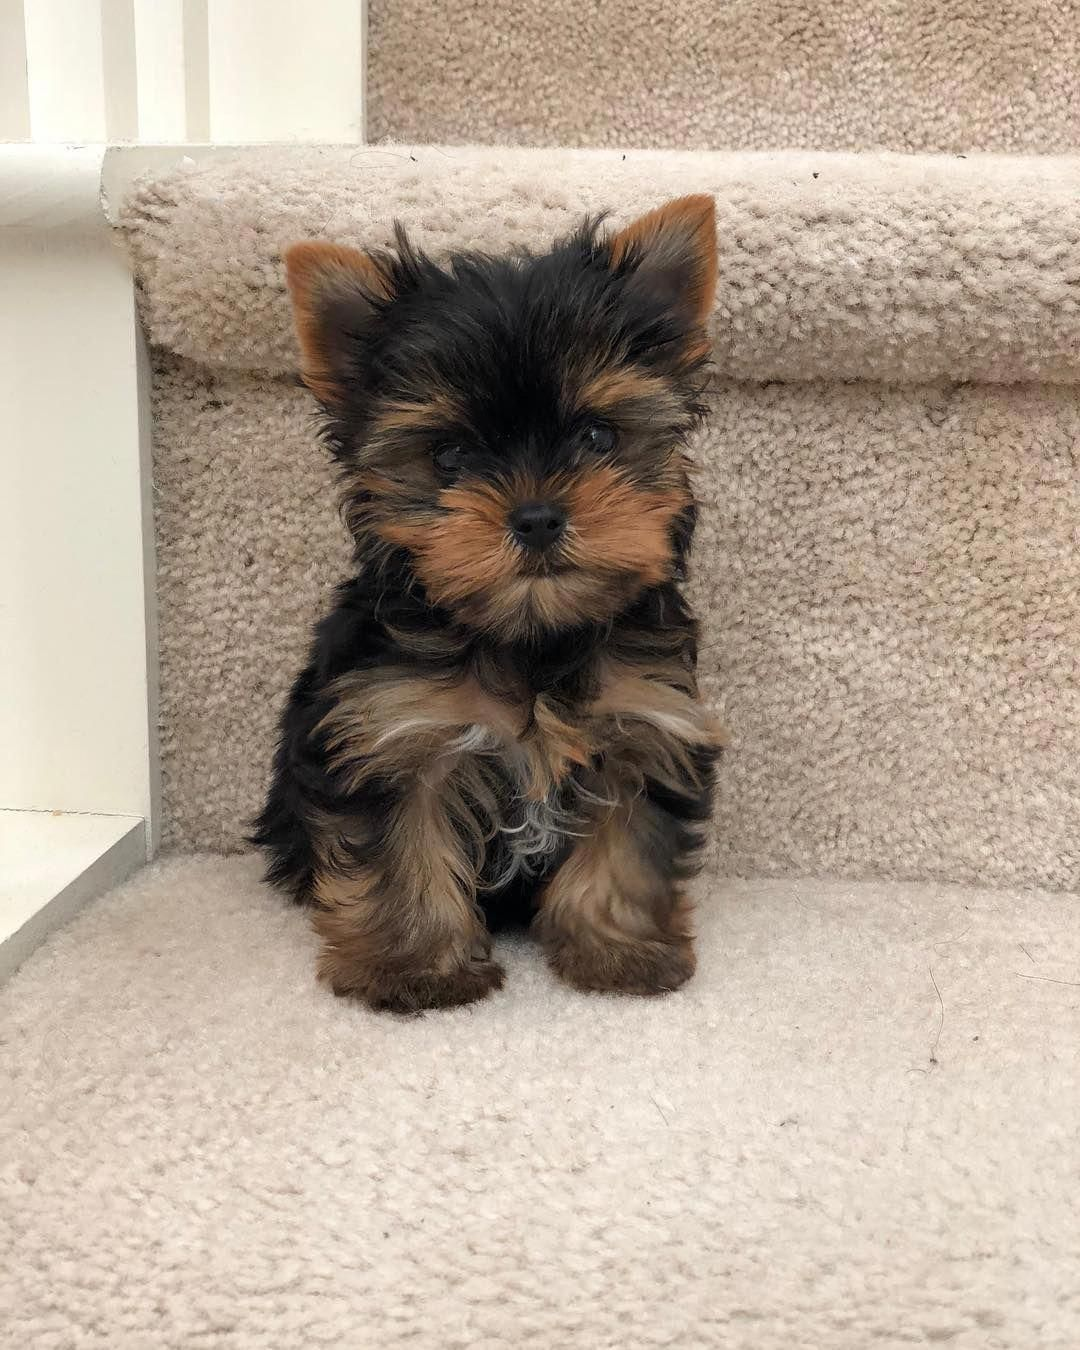 All The Things We All Love About The Affectionate Yorkshire Terrier Yorkshireterriersverige Yorkshire Yorkie Puppy Yorkshire Terrier Dog Teacup Yorkie Puppy